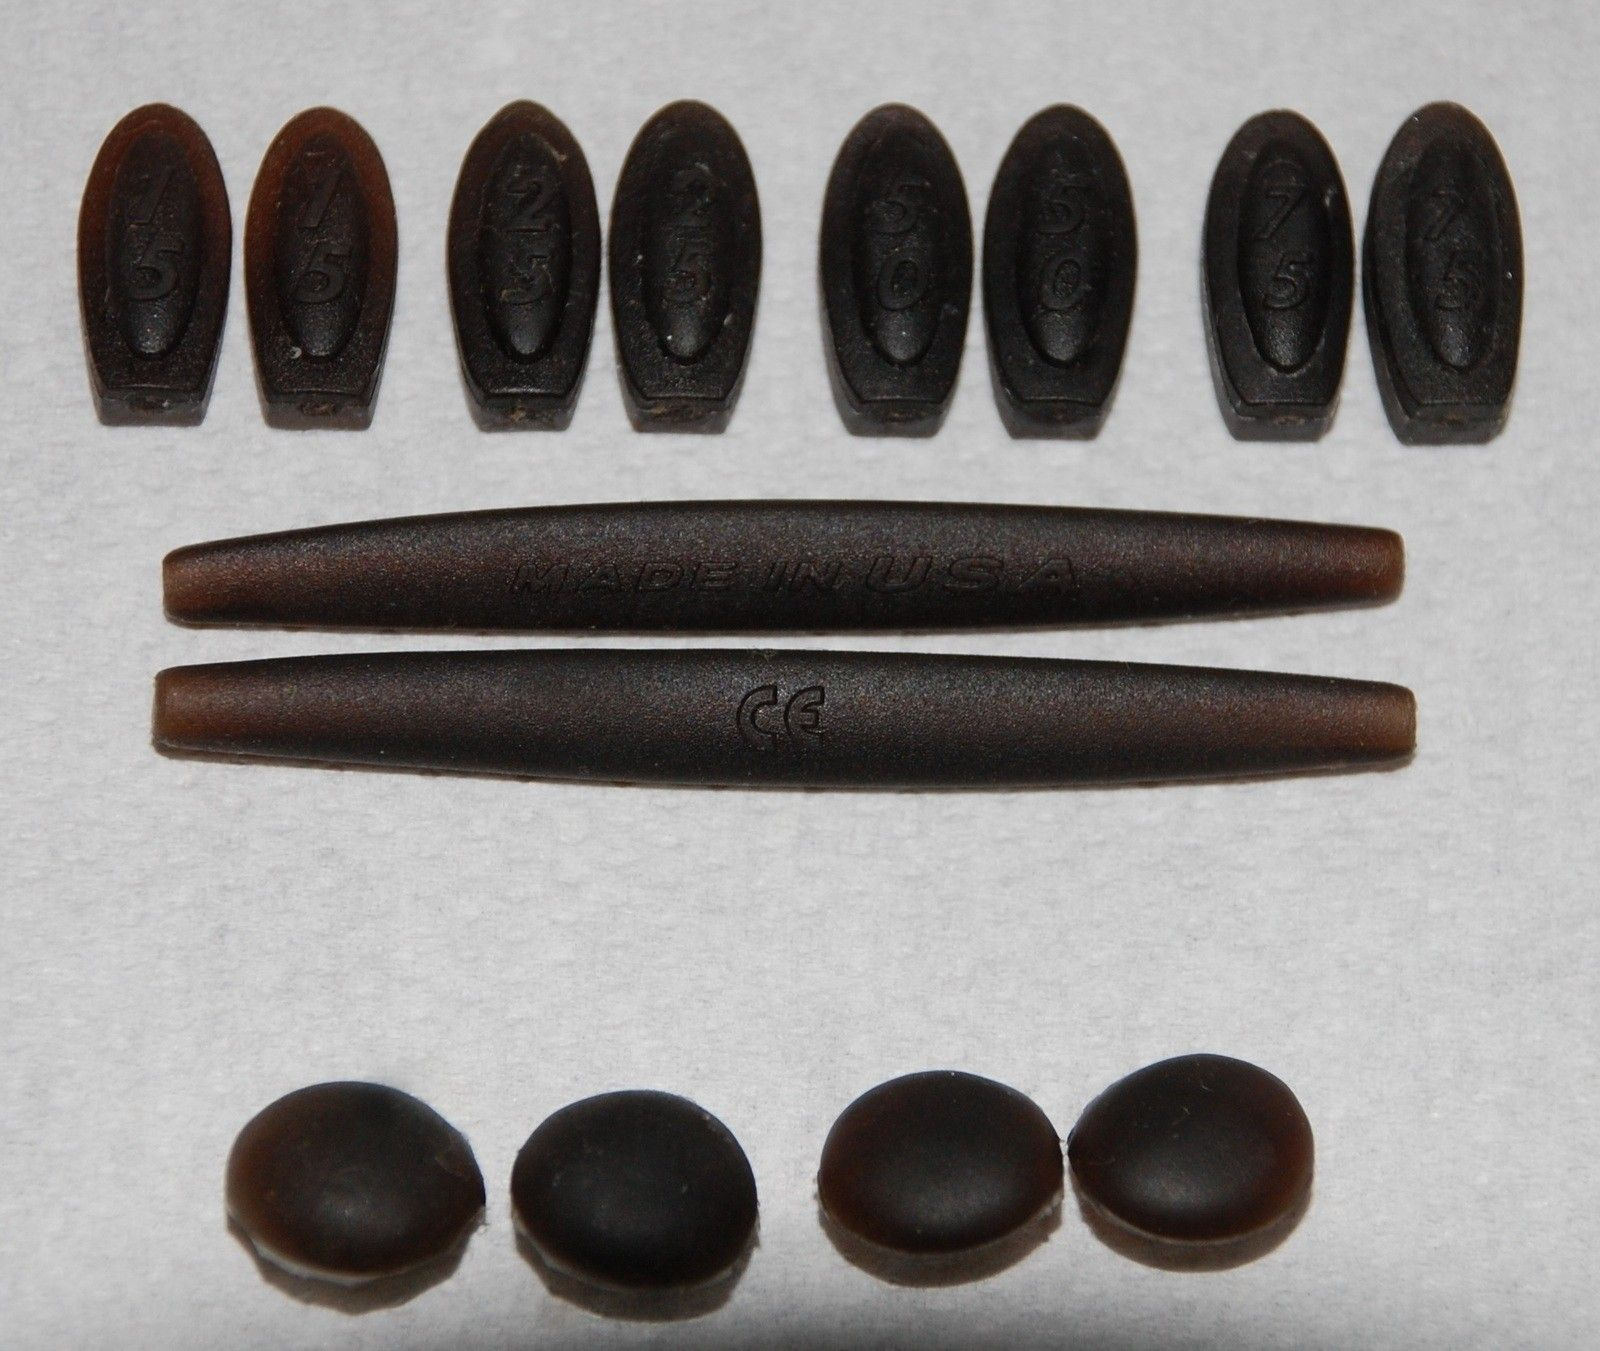 R1 OEM Full rubber kit (with 15-25-50-75 Temple s. and 2 different size nose bombs) - R1 F.jpg